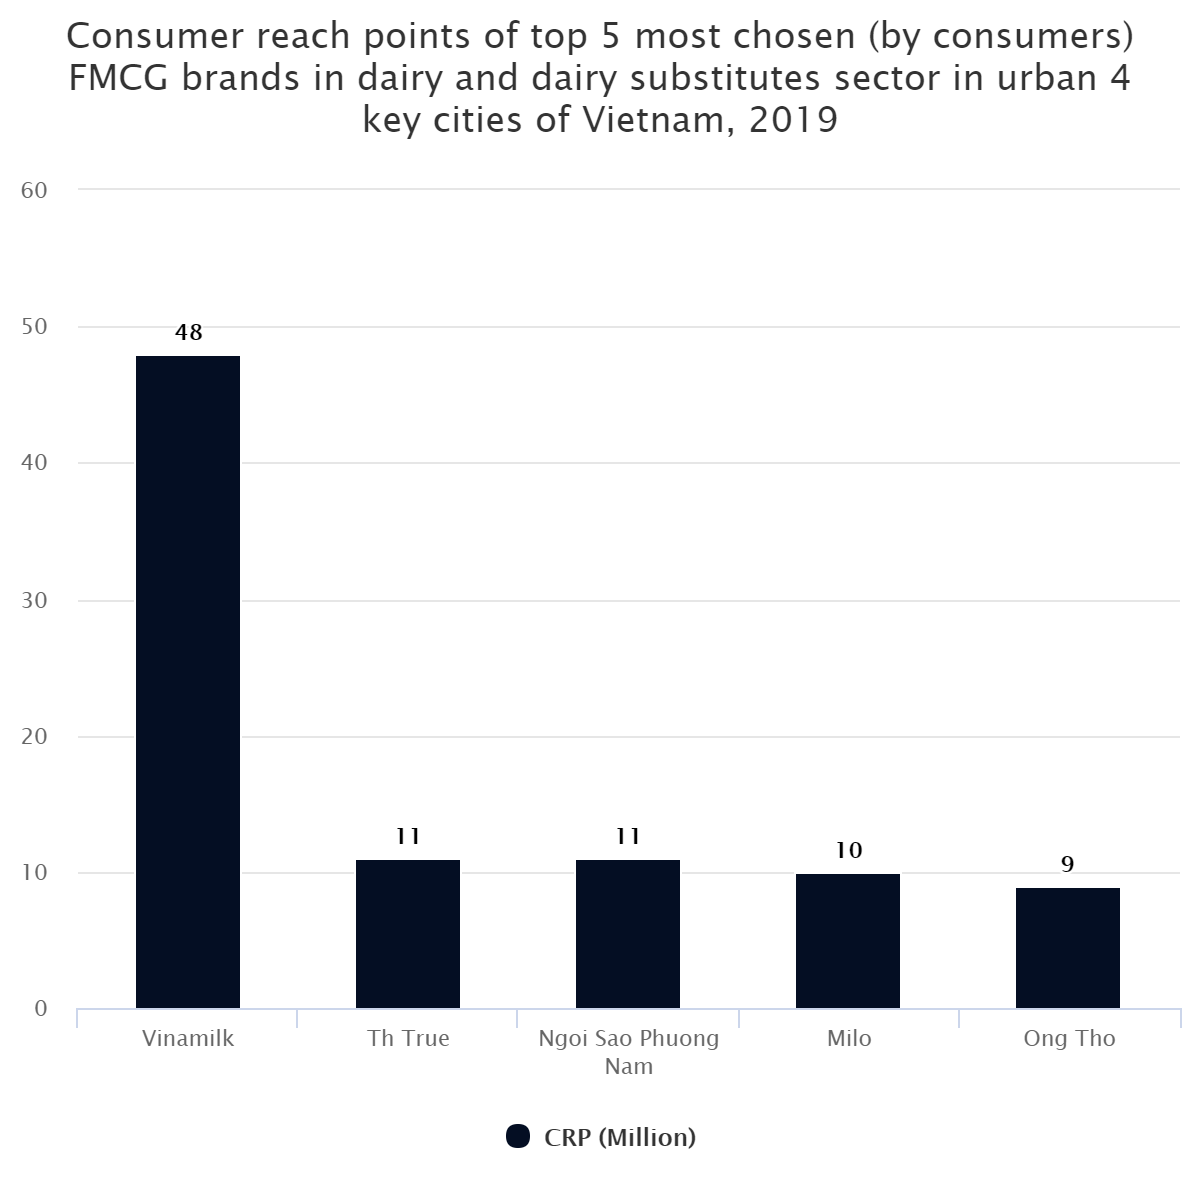 Consumer reach points of top 5 most chosen (by consumers) FMCG brands in dairy and dairy substitutes sector in urban 4 key cities of Vietnam, 2019